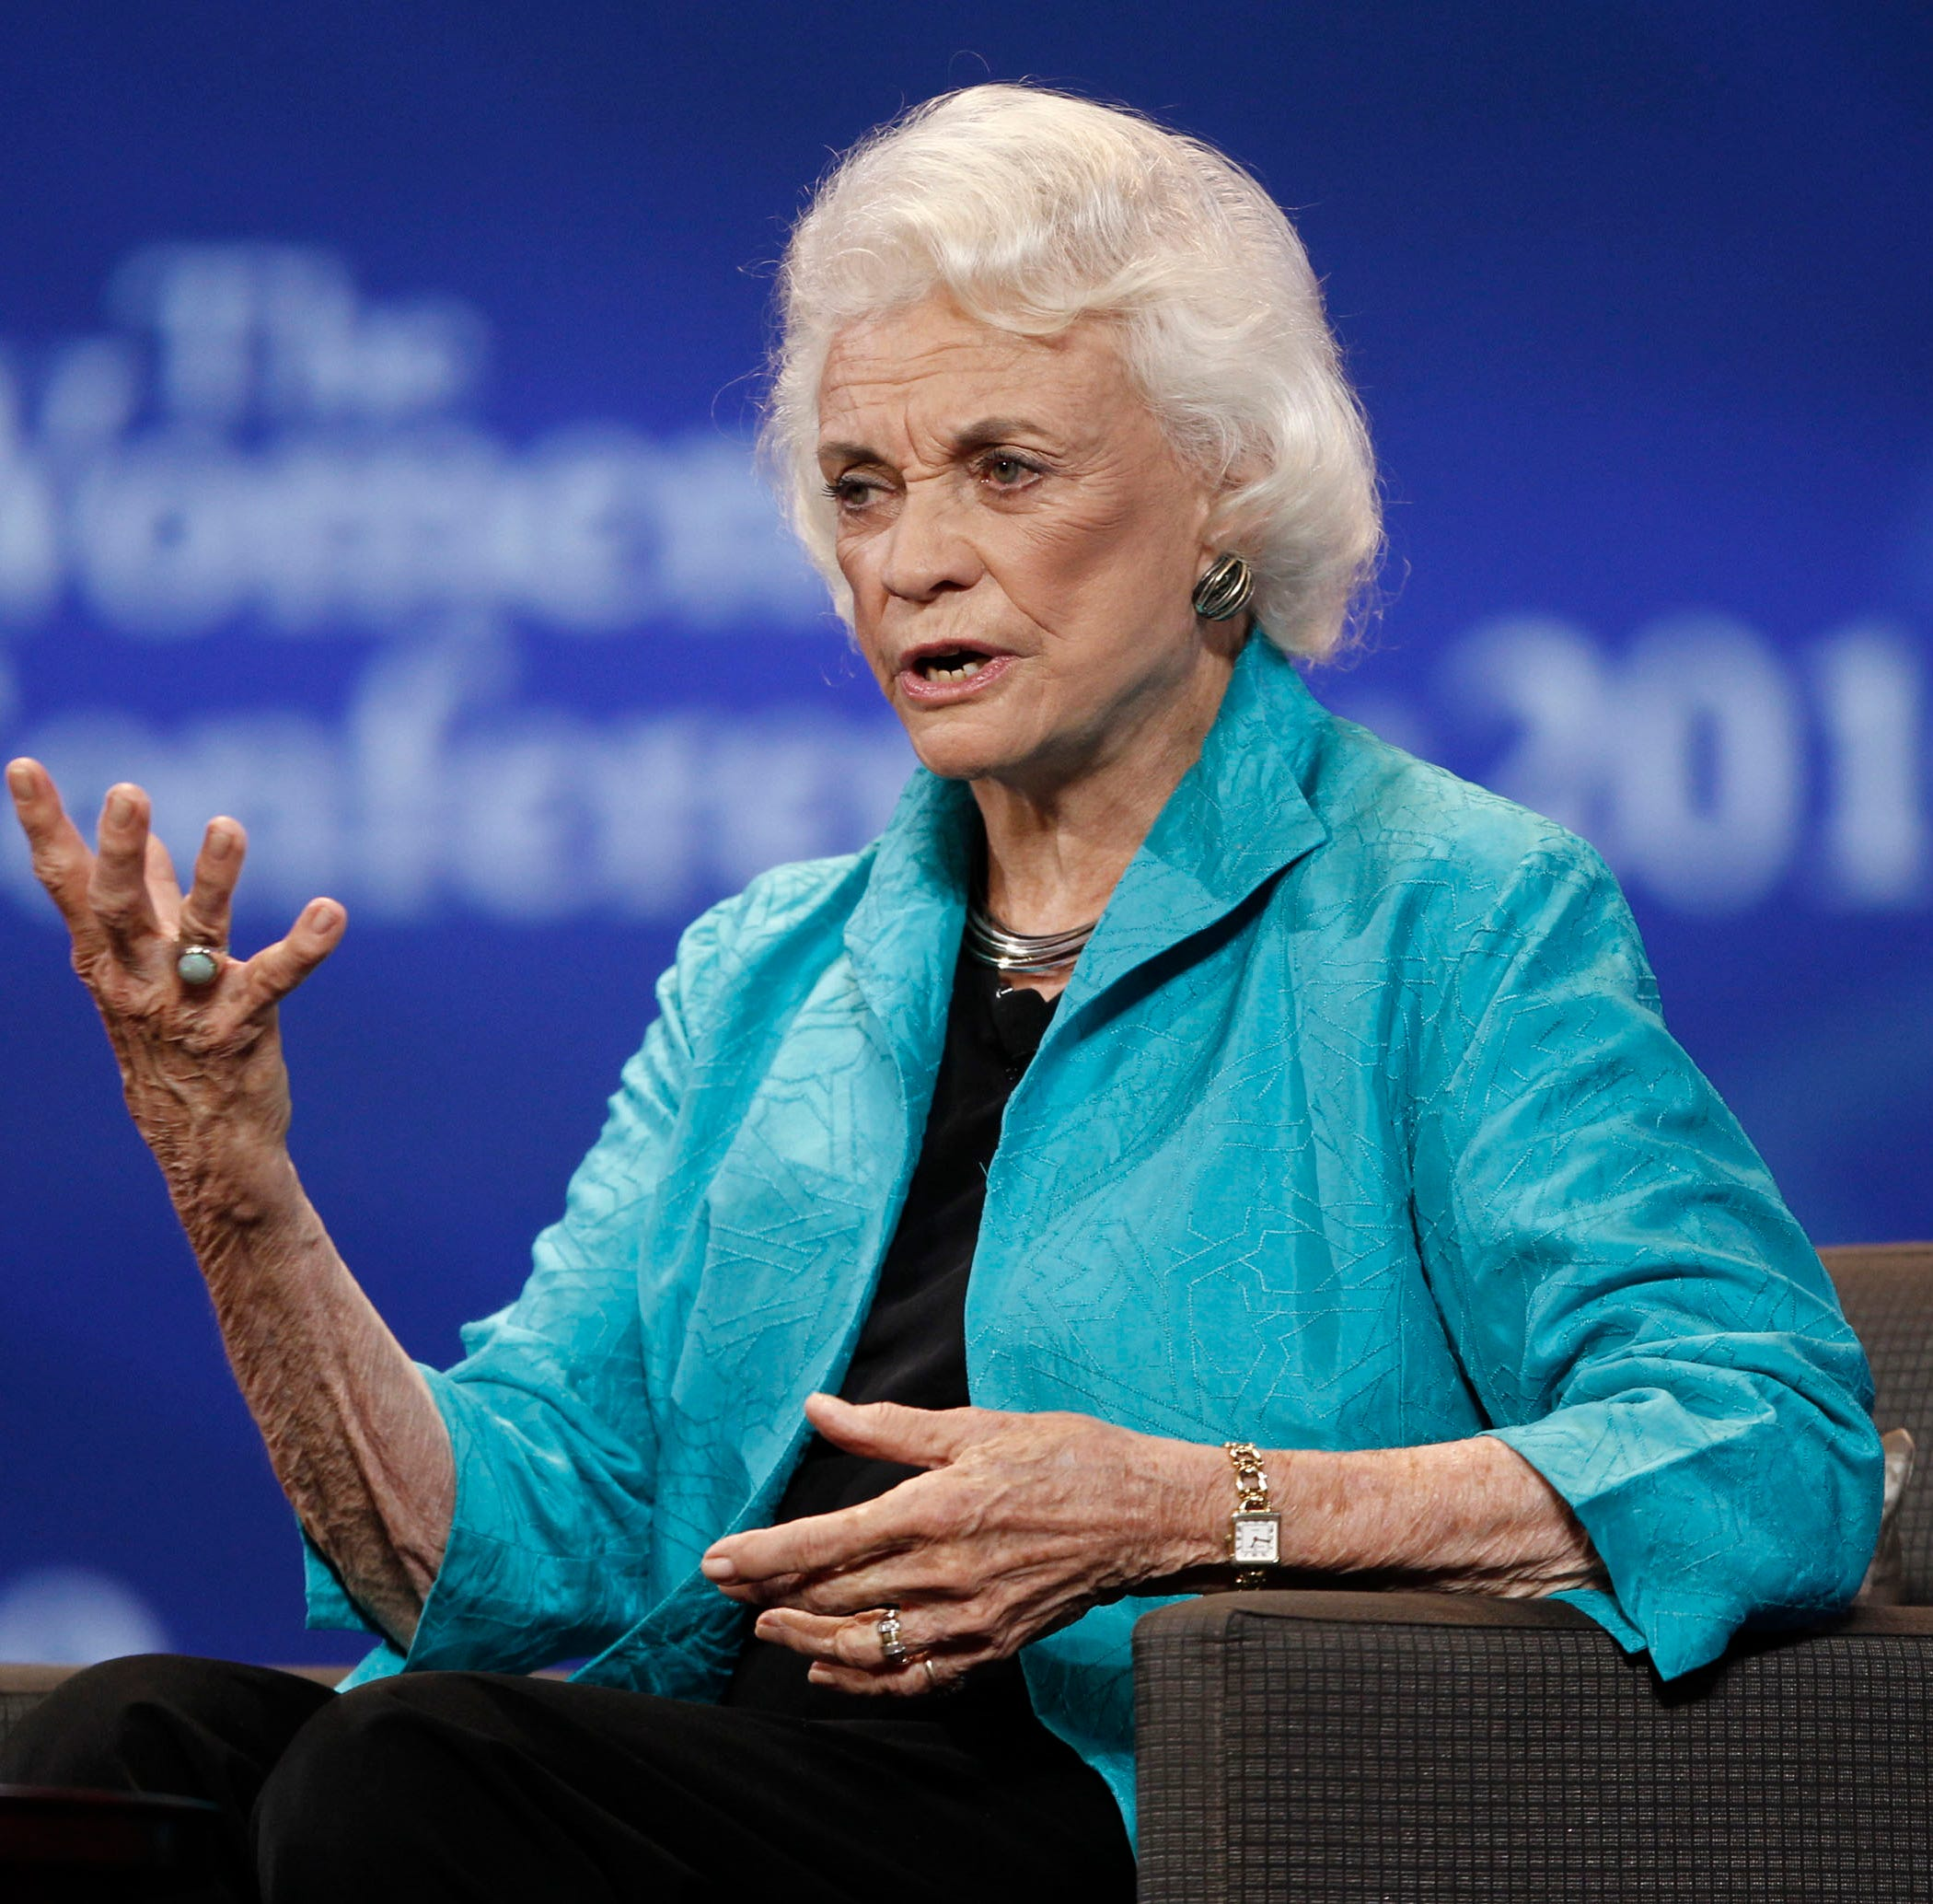 First female Supreme Court Justice Sandra Day O'Connor announces she has dementia